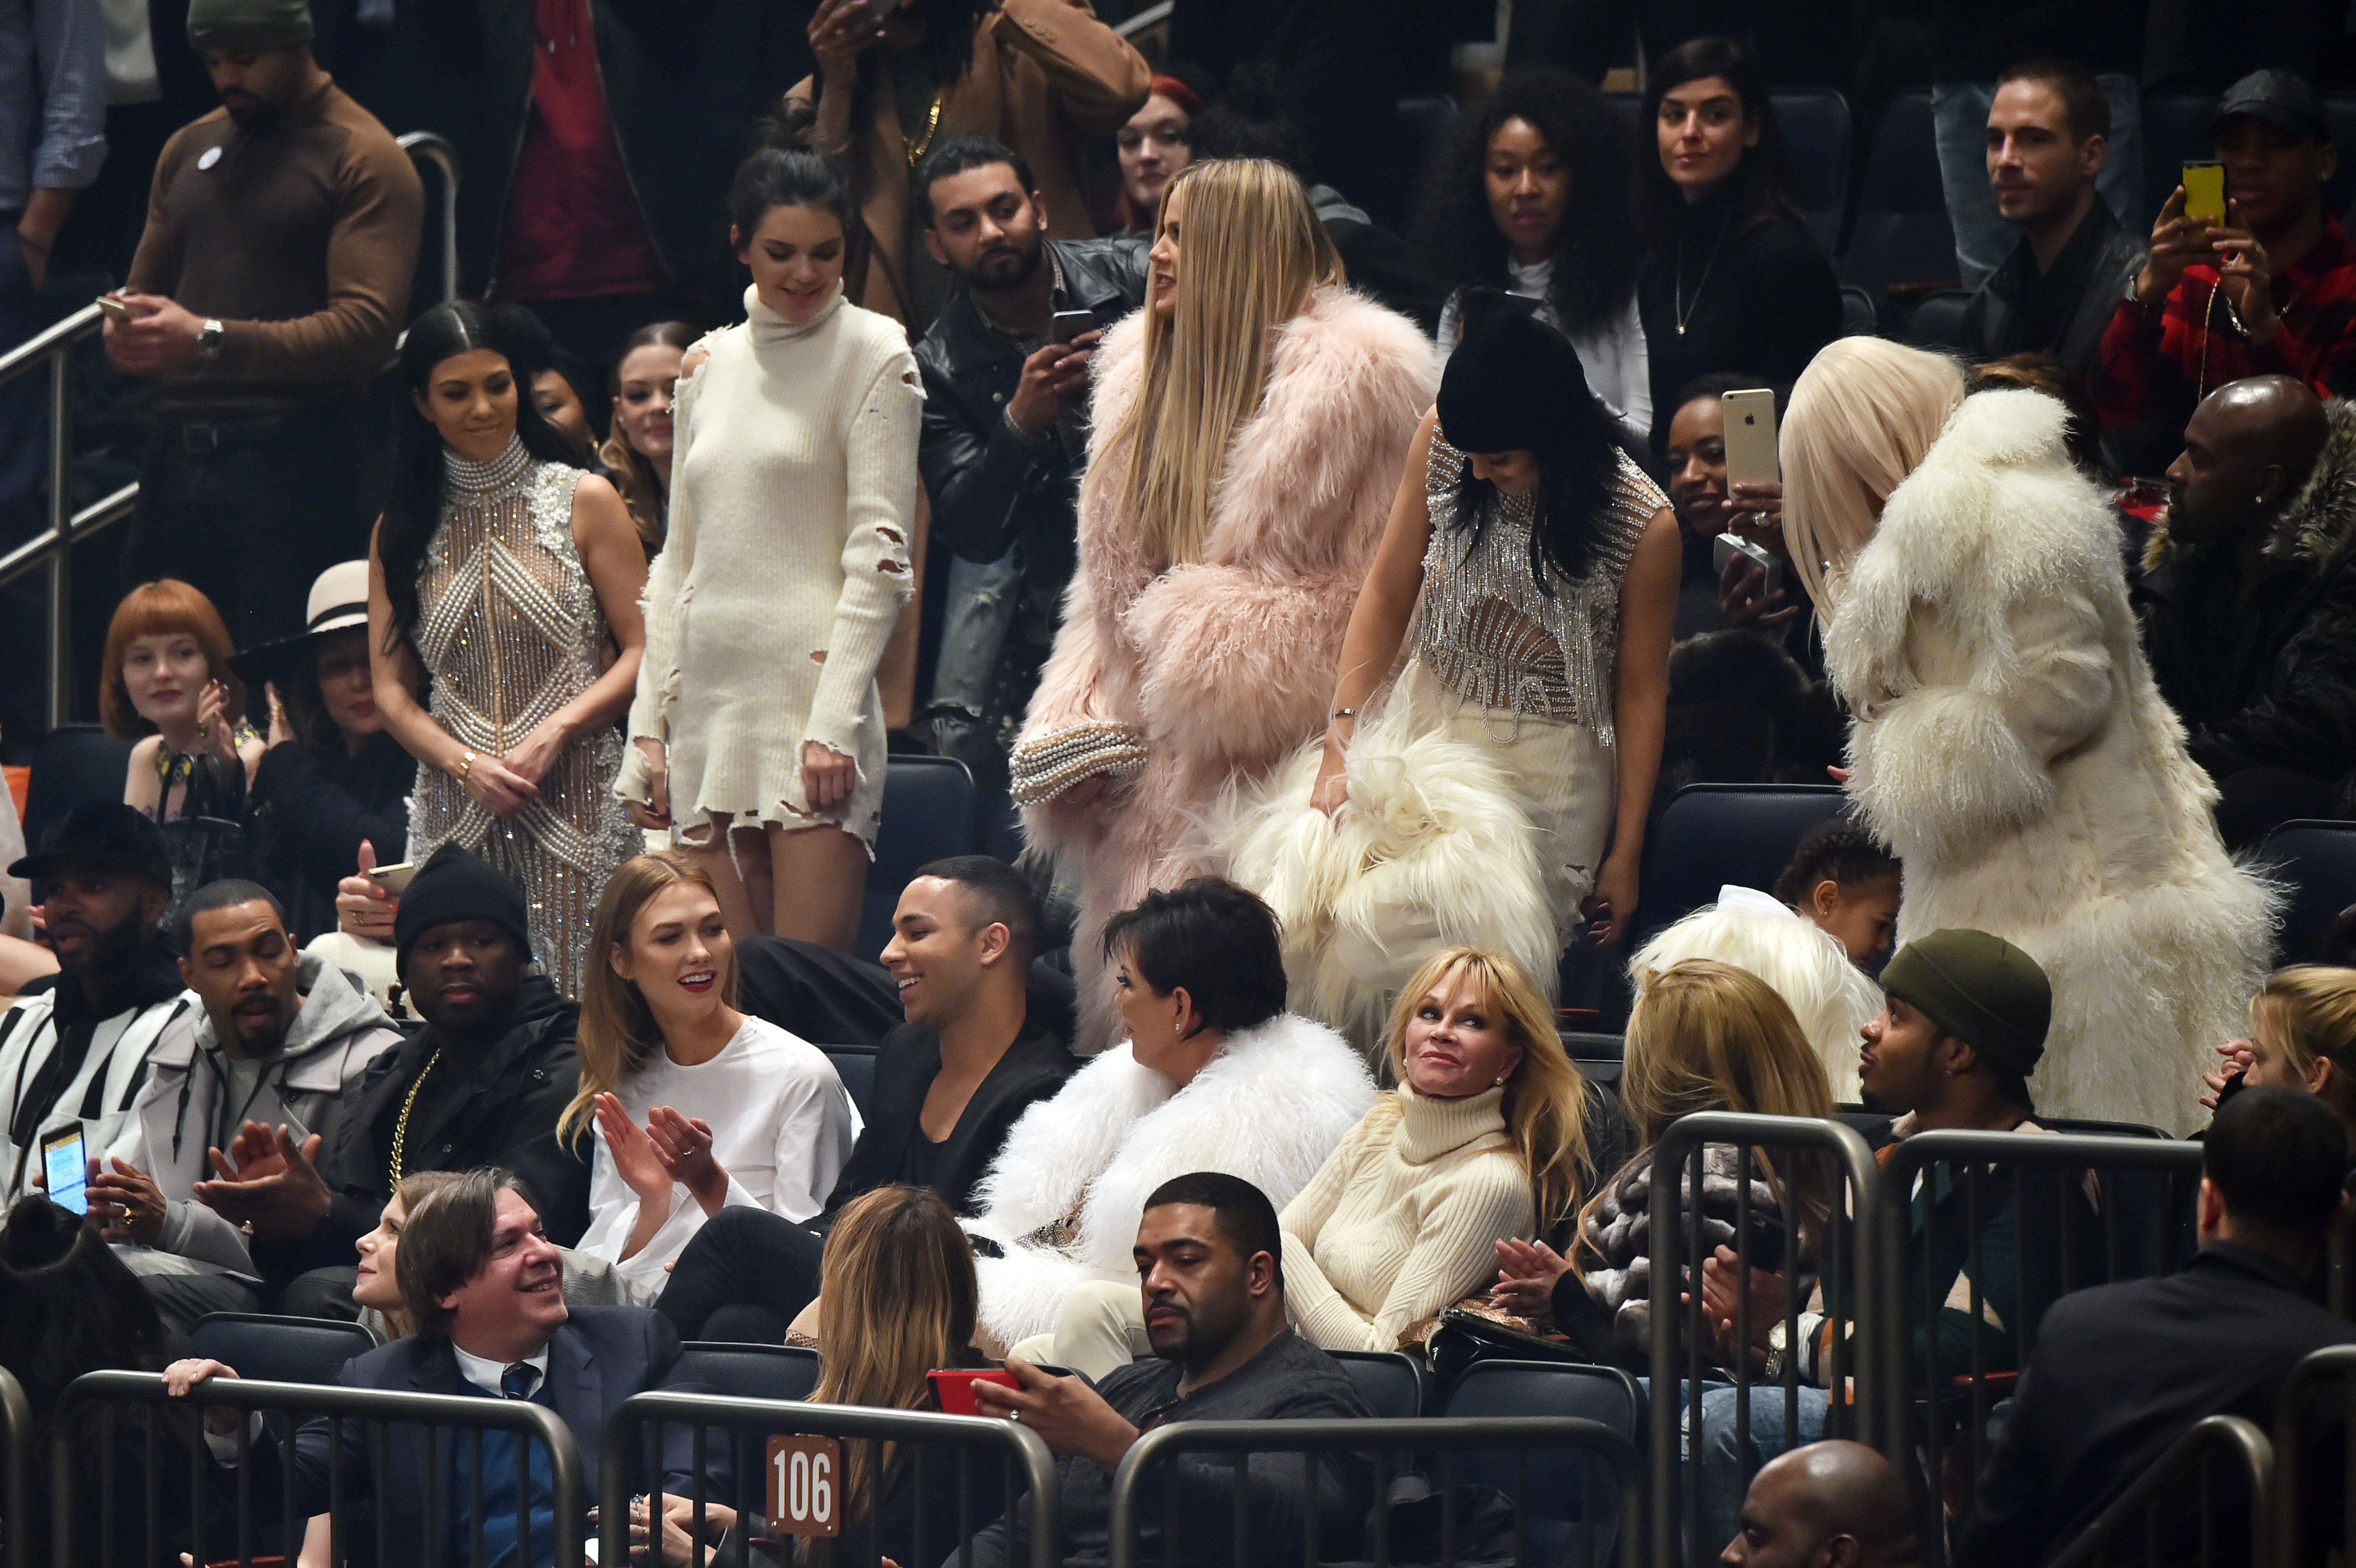 kanye-yeezy-show-5585909at